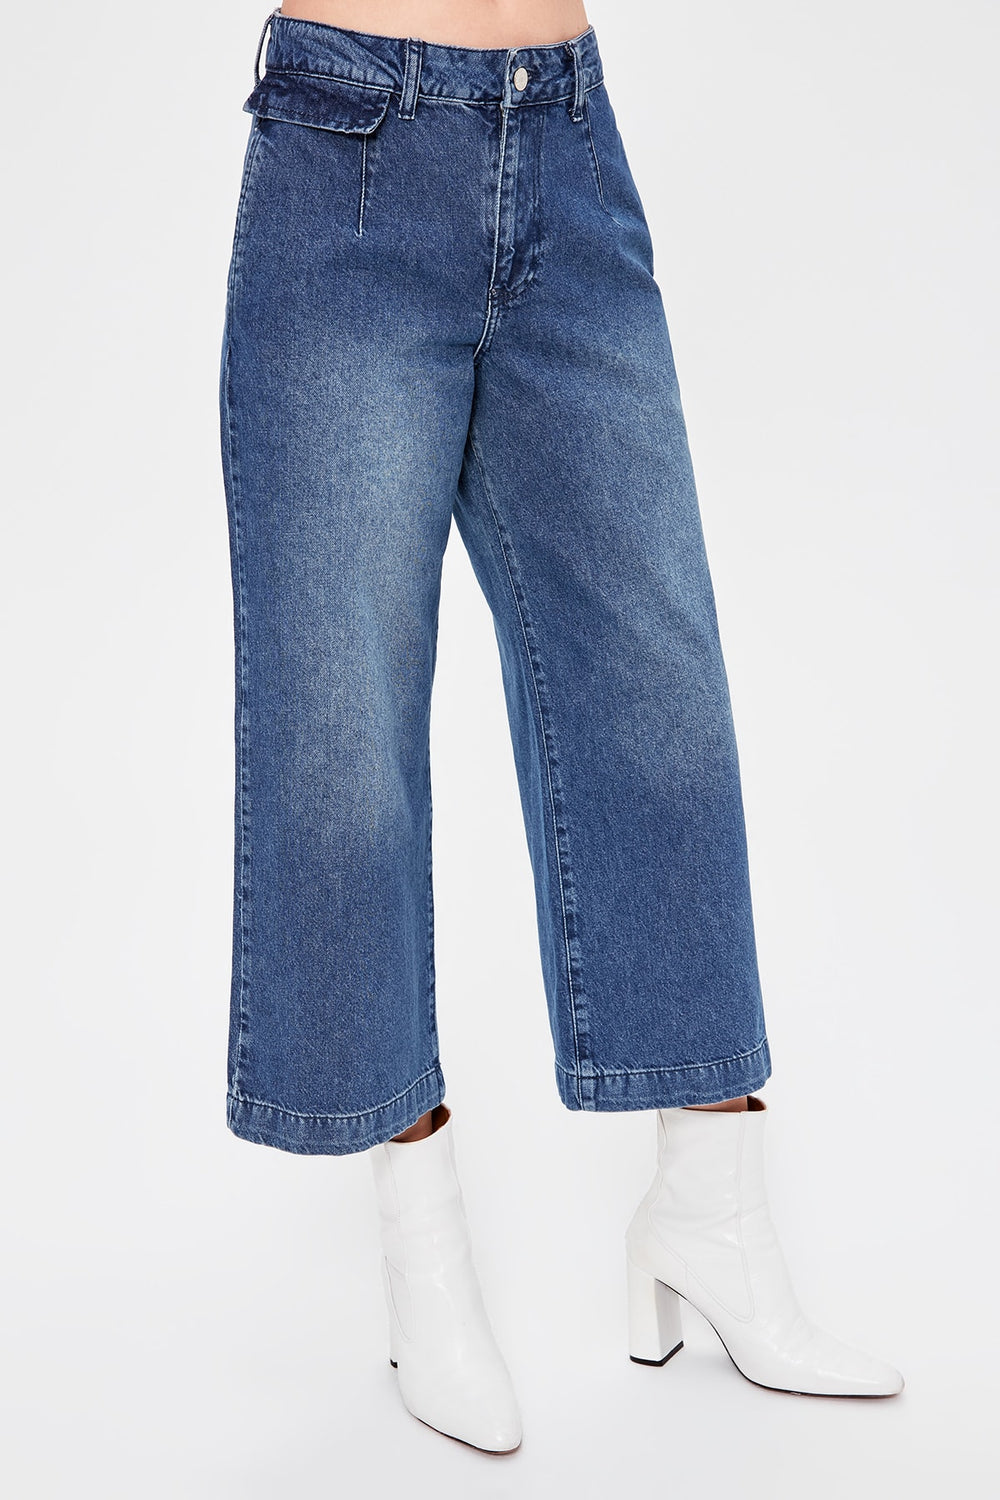 Miss Zut Miss Zut Blue High Waist Culotte Jeans Miss Zut &CO